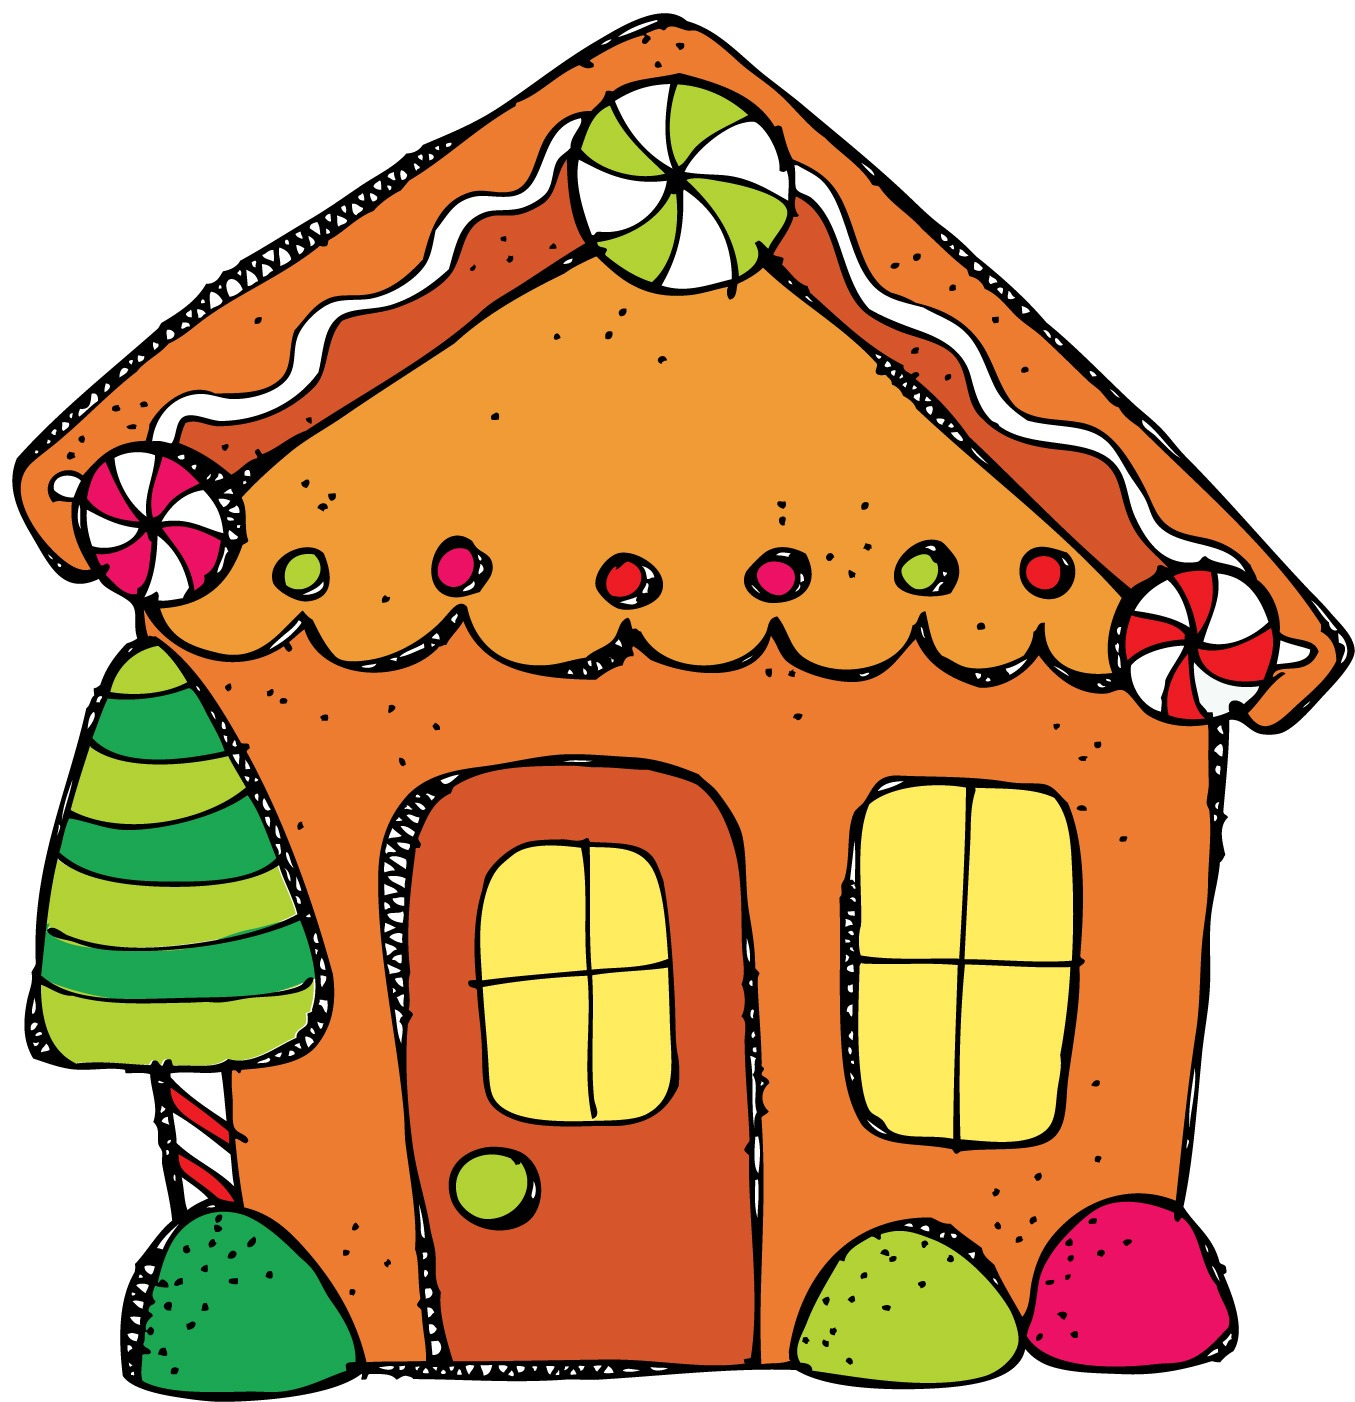 2 children in a new house clipart png transparent library Home new house clipart kid 2 - Clip Art Library png transparent library